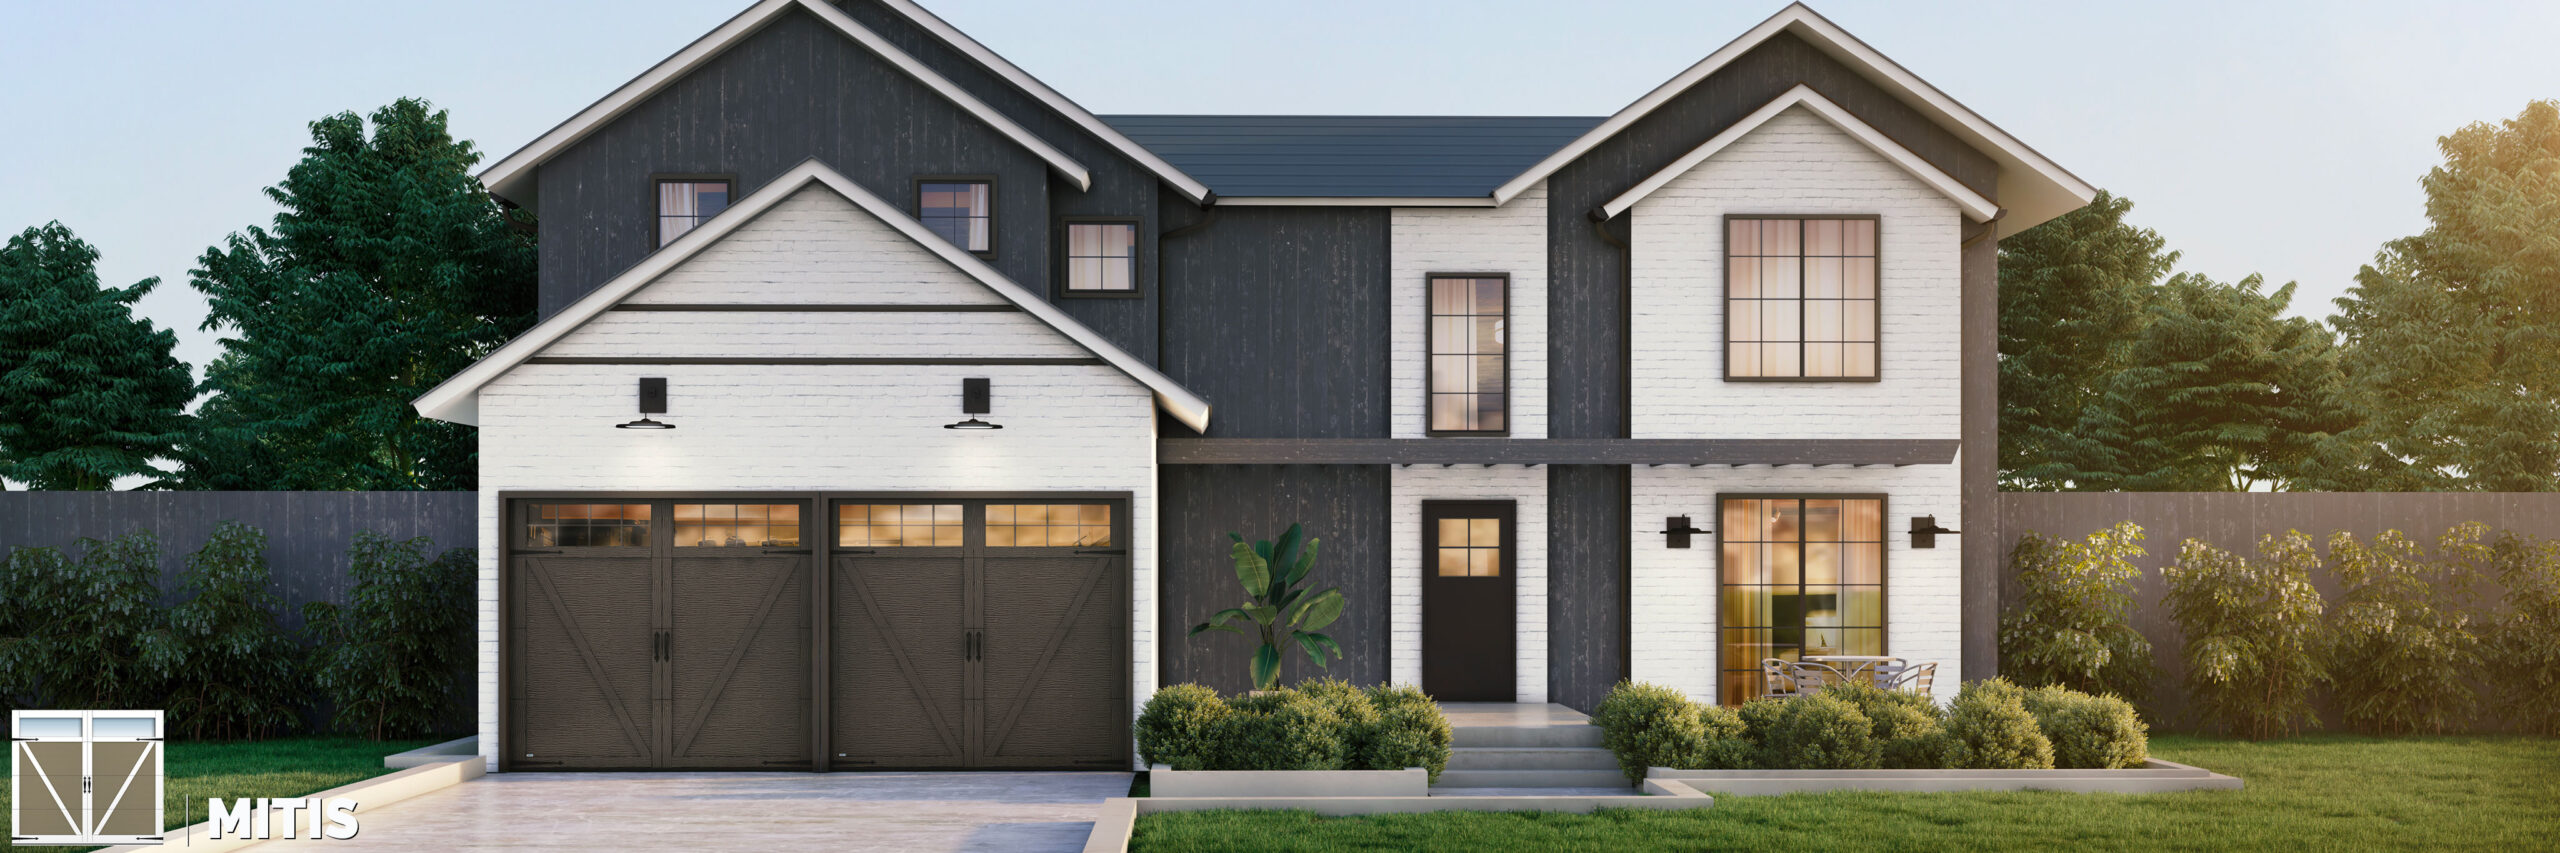 mitis carriage house style garage door by garex scaled